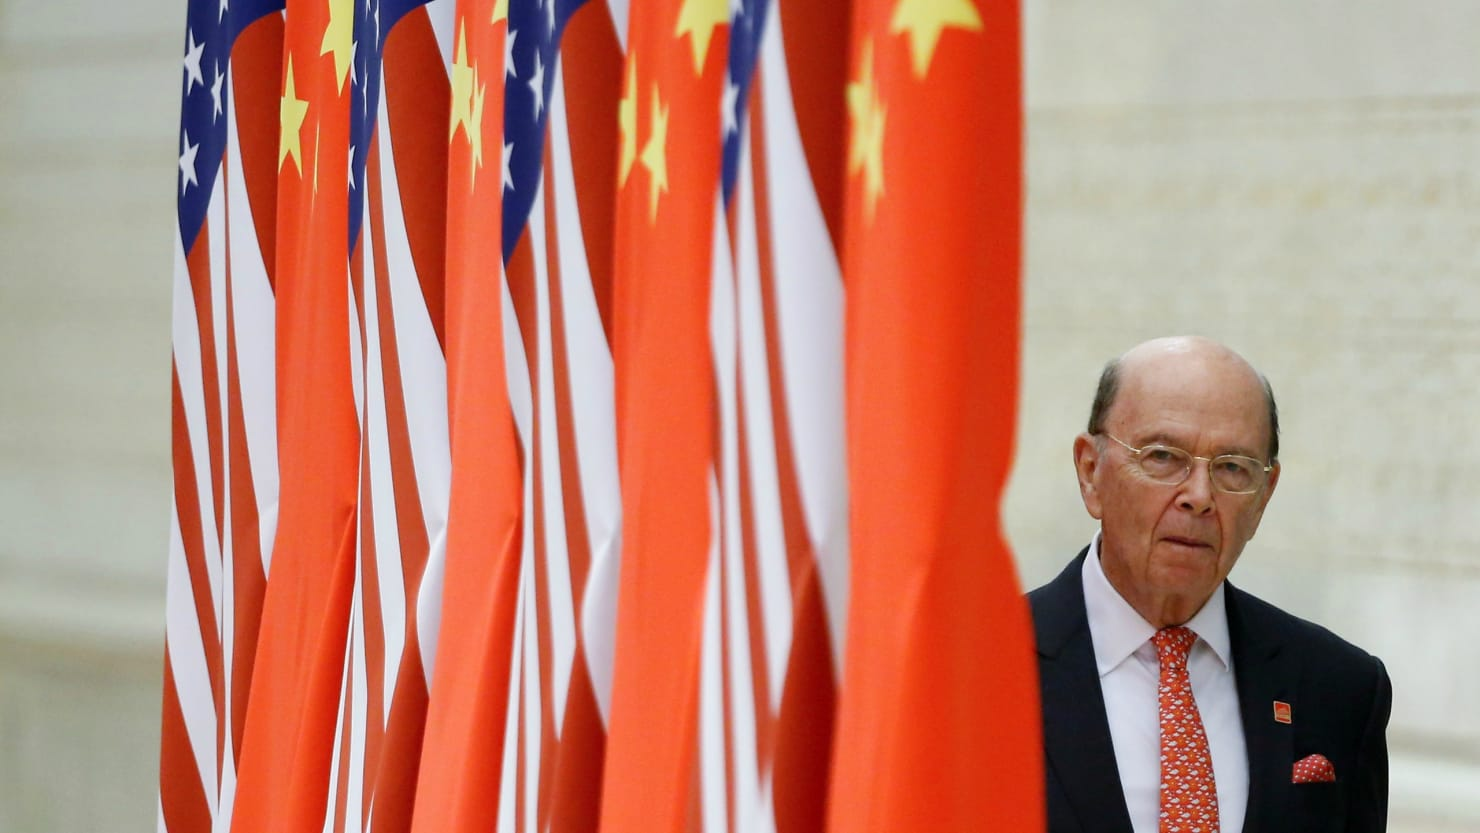 Wilbur Ross Never Sold Stakes in Companies Co-Owned by China, Report Says